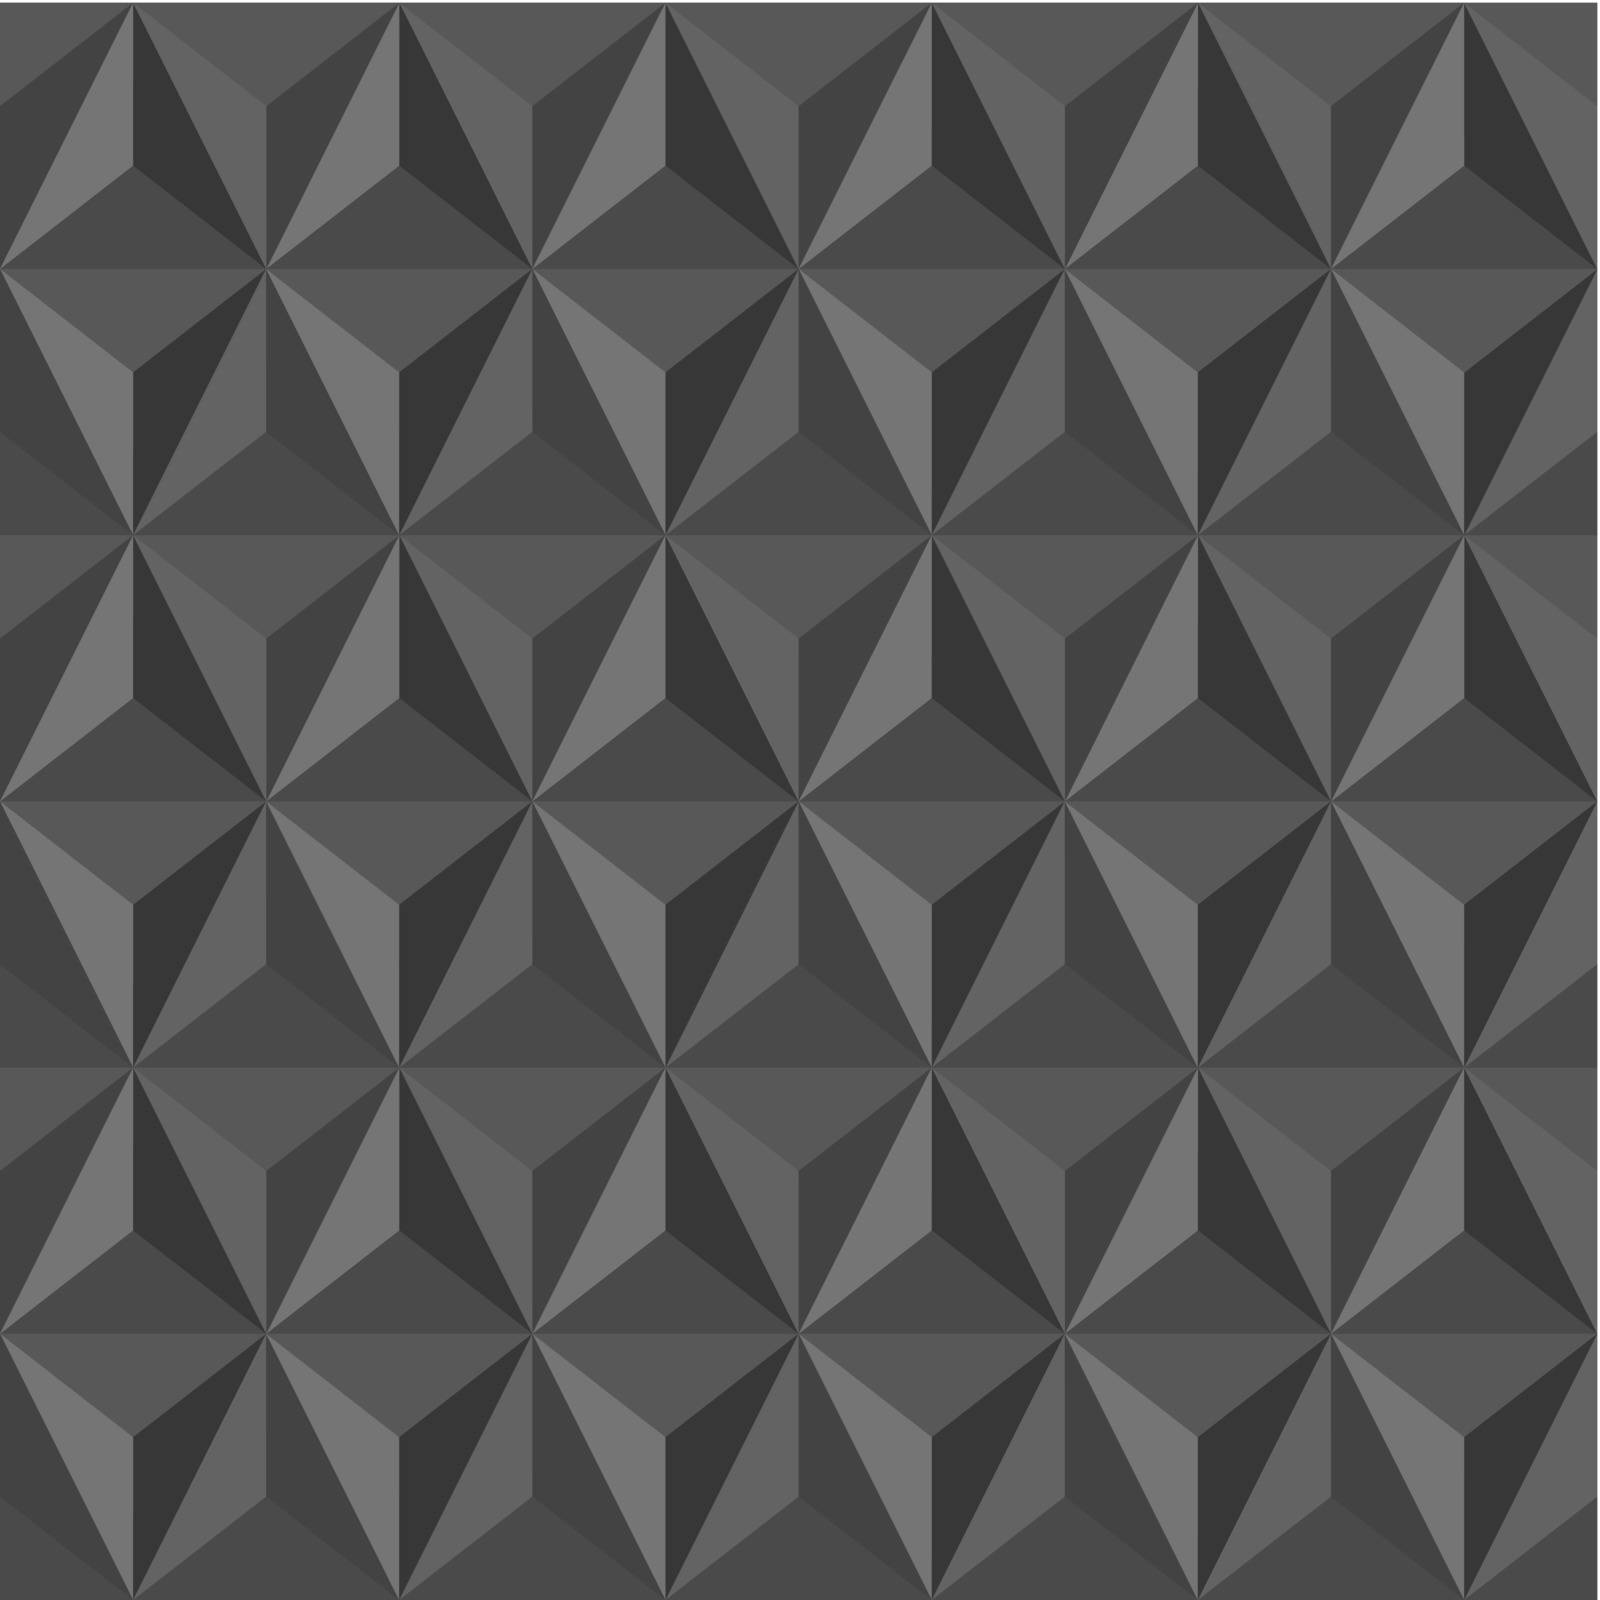 Trendy grey vintage abstract triangle seamless pattern background. Vector file layered for easy editing.